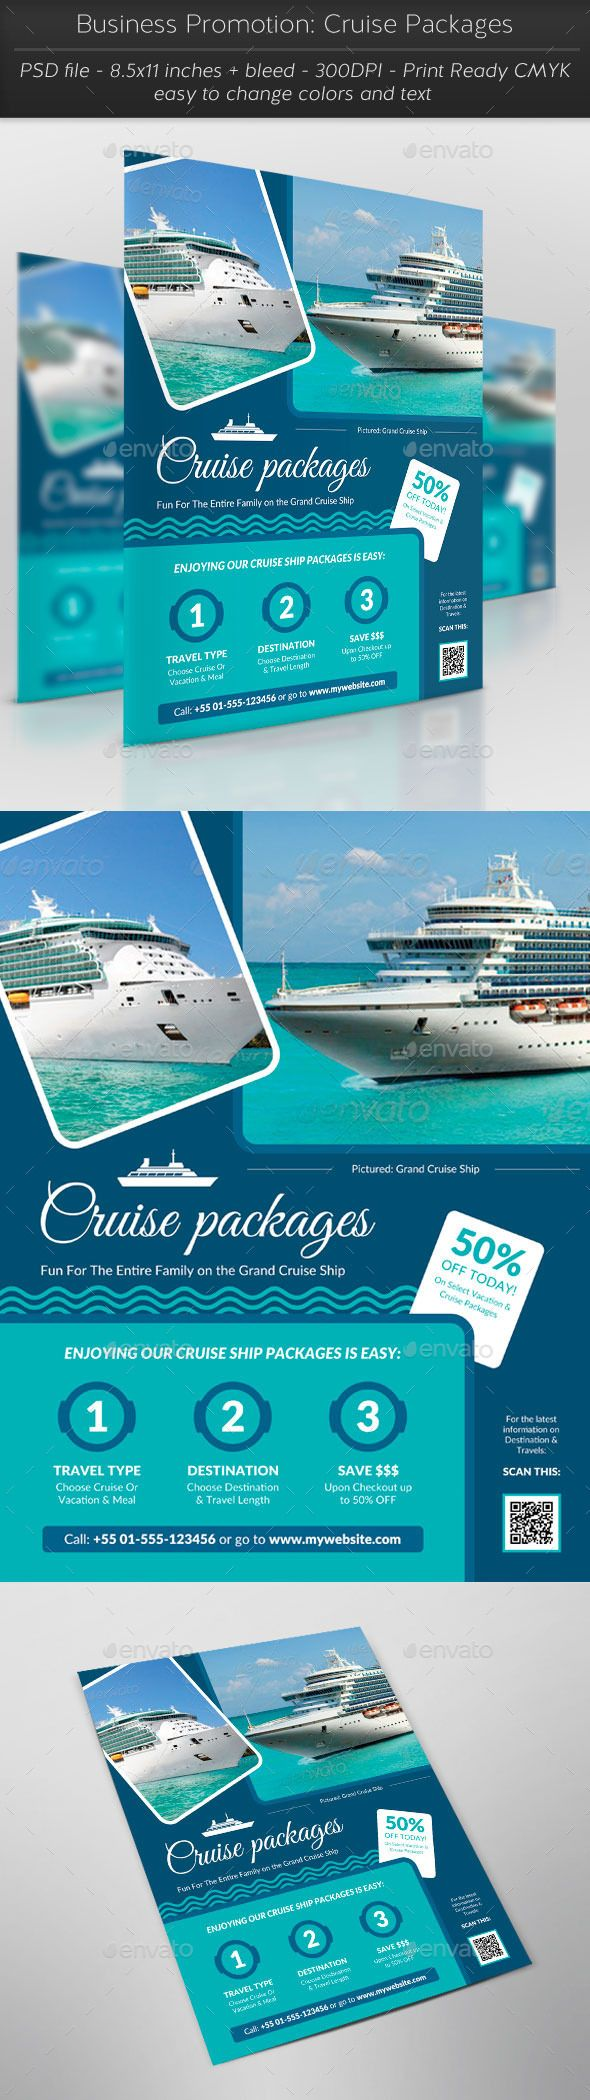 Business Promotion Cruise Packages Pinterest Promotion Flyer